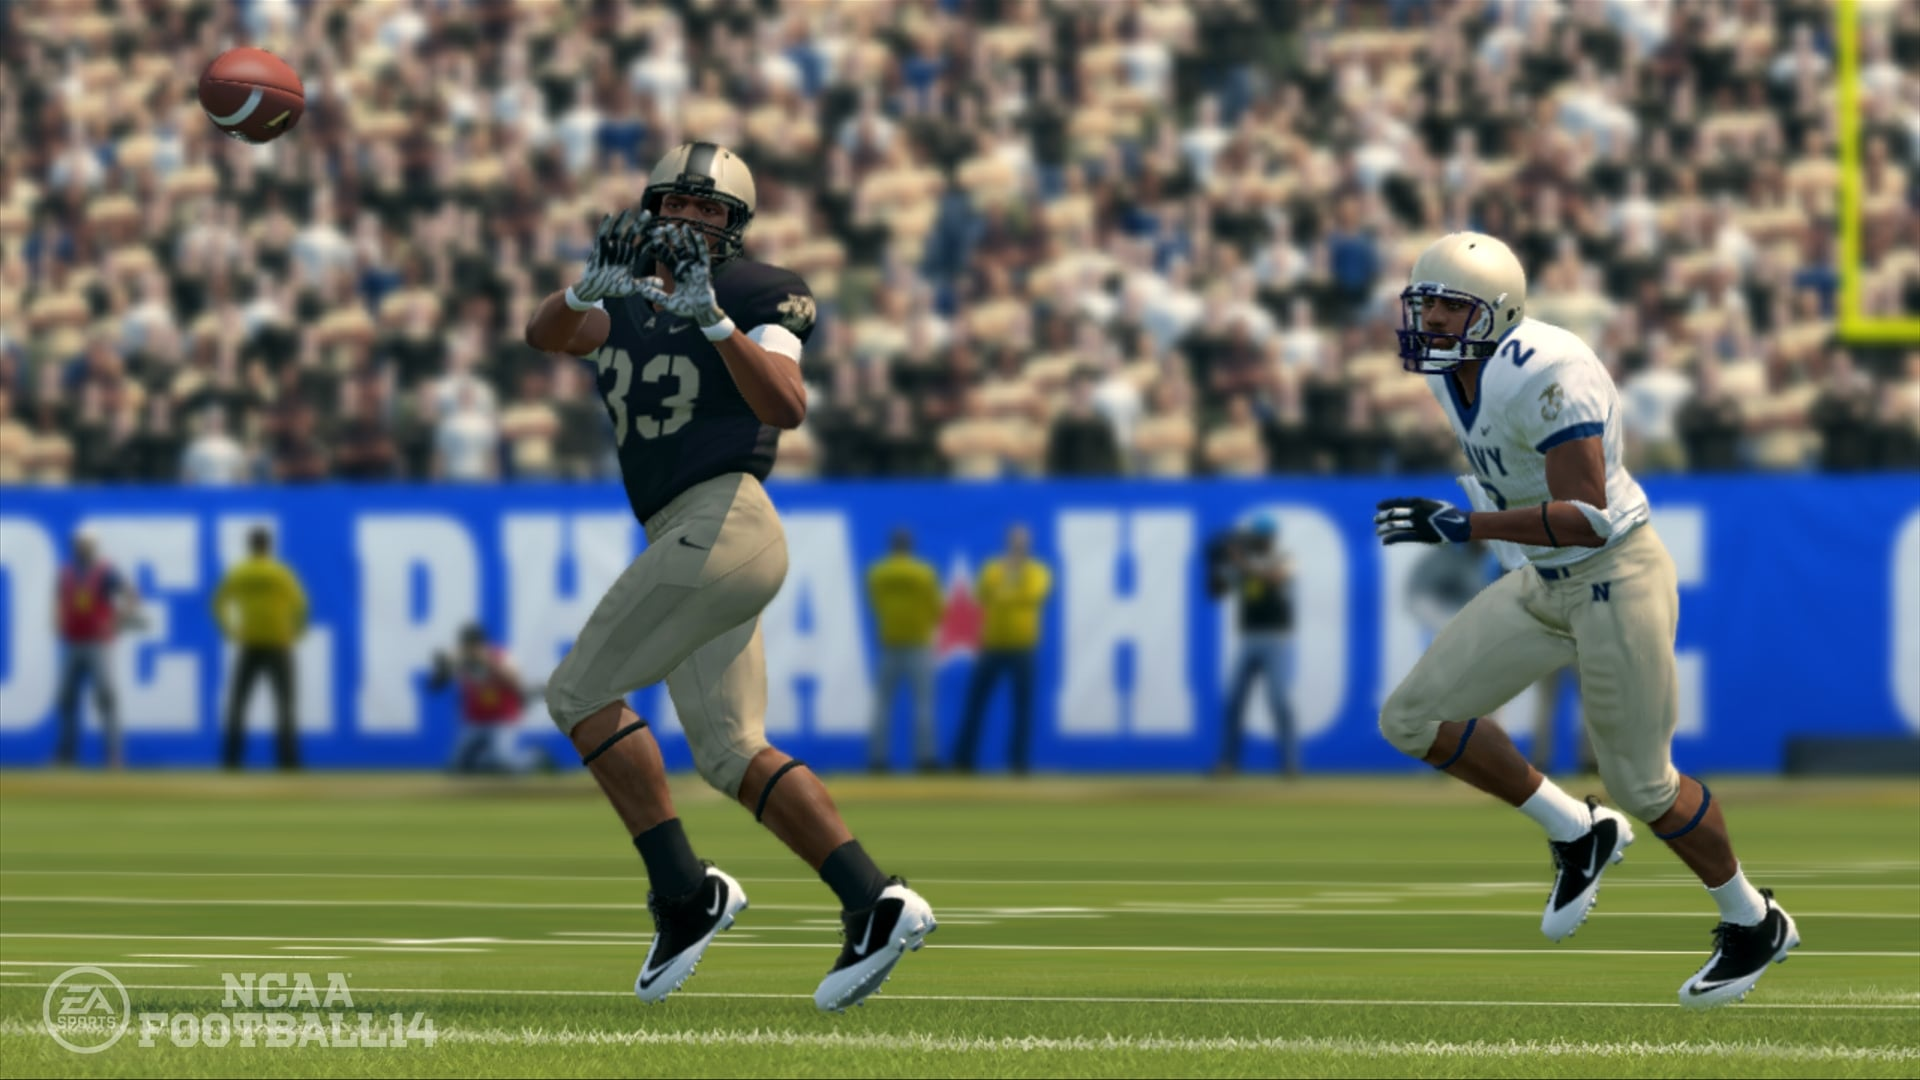 20/4/2013 - NCAA 14 - Screen 01